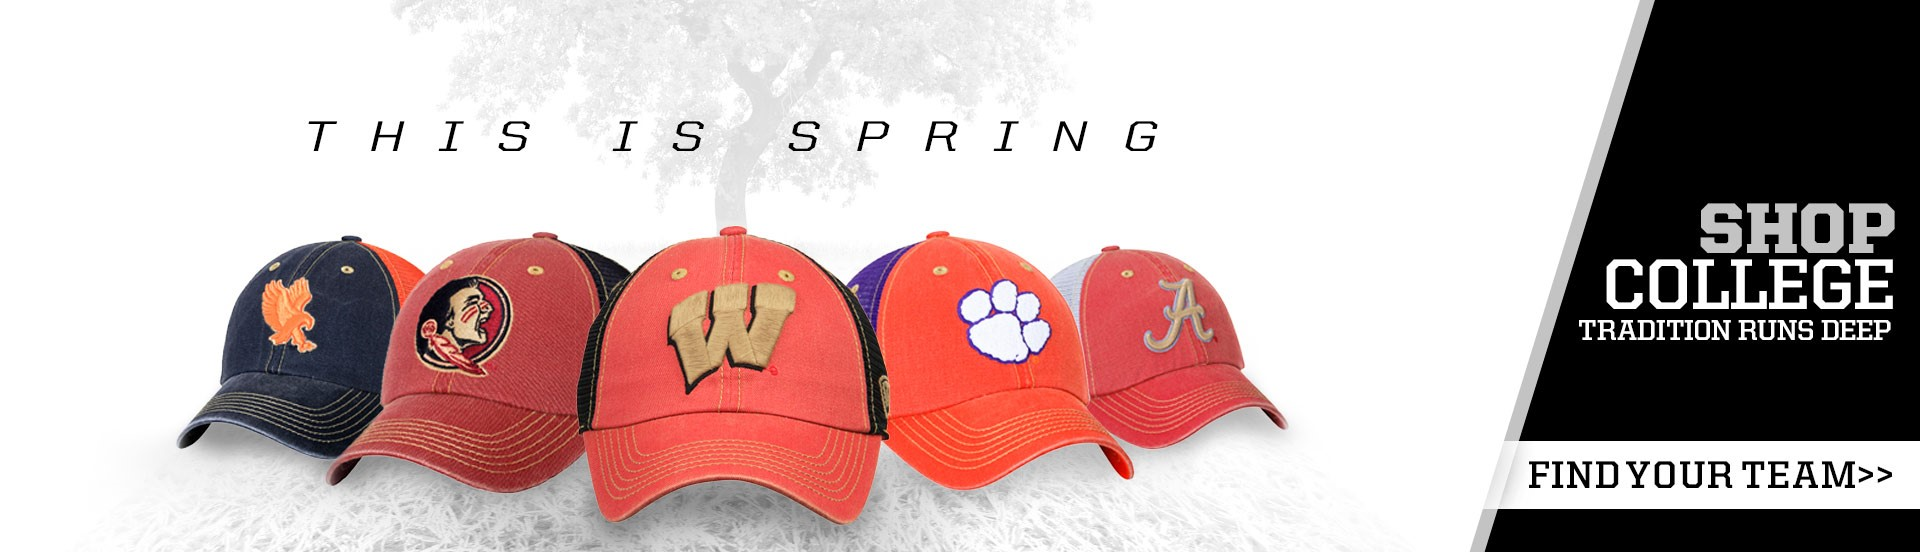 Shop college hats from Top of the World Headwear.